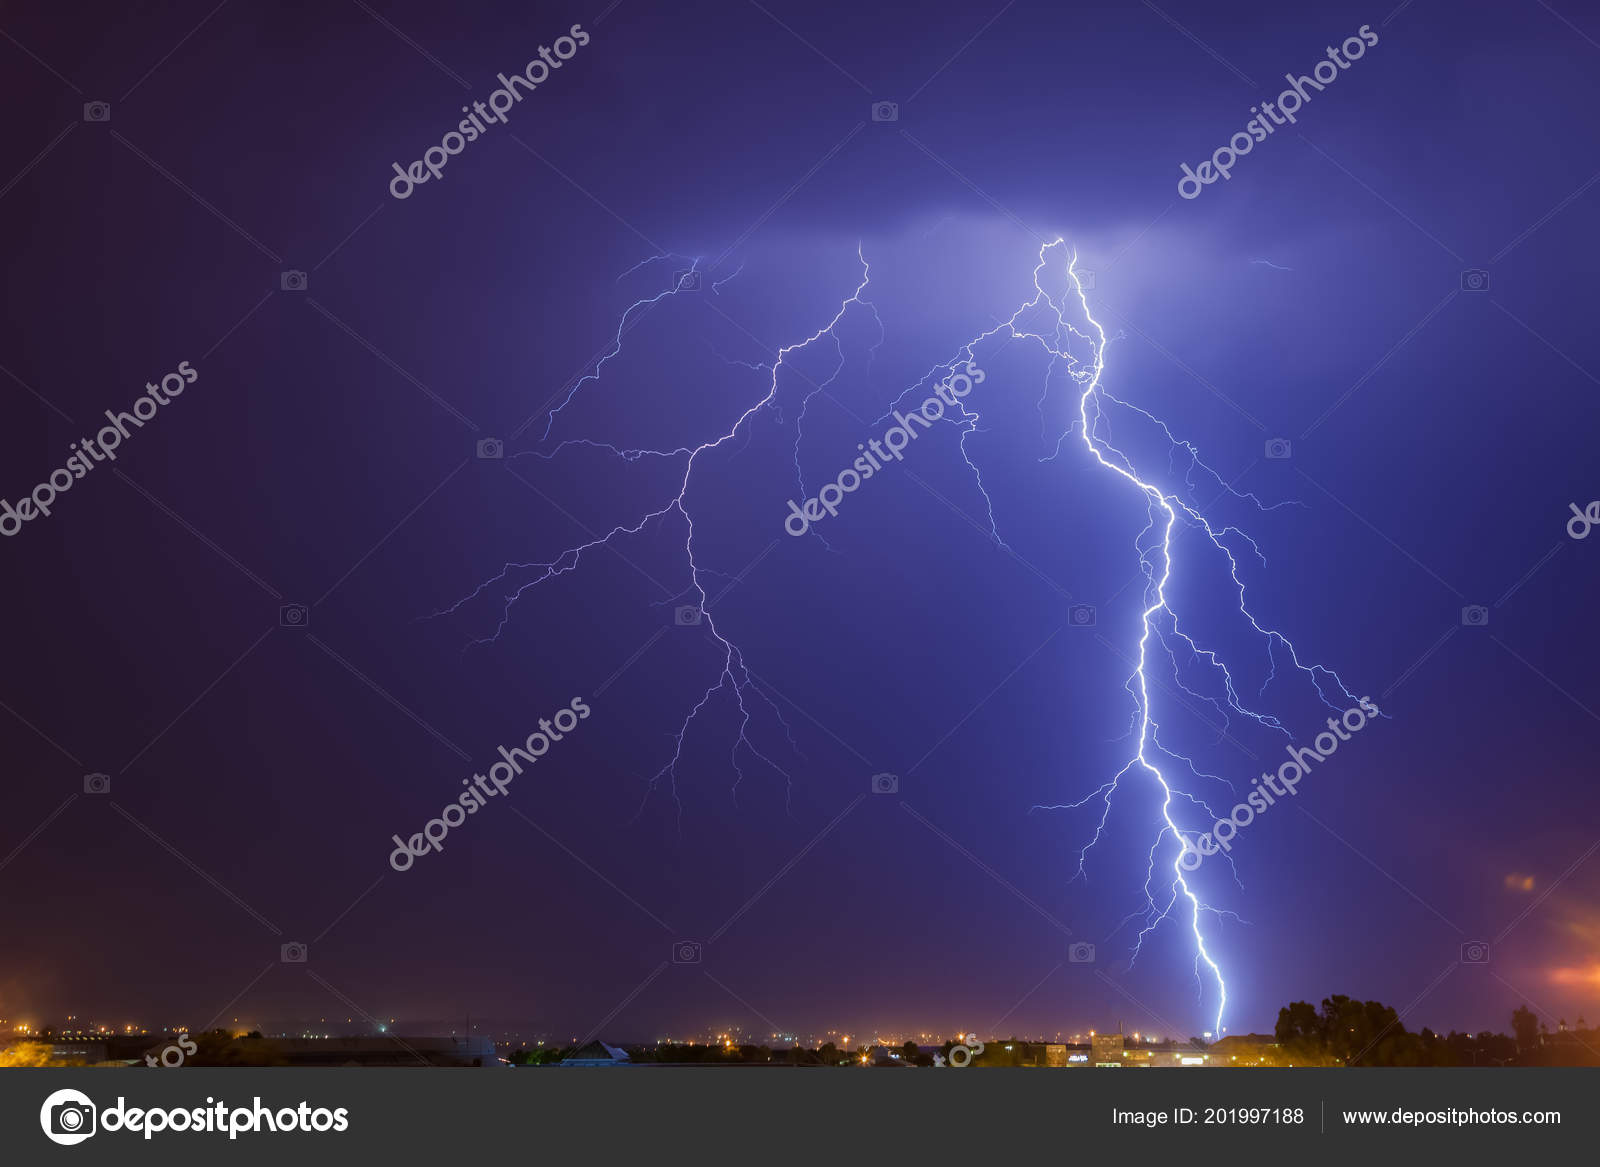 cloud ground lightning strike johannesburg night time region south